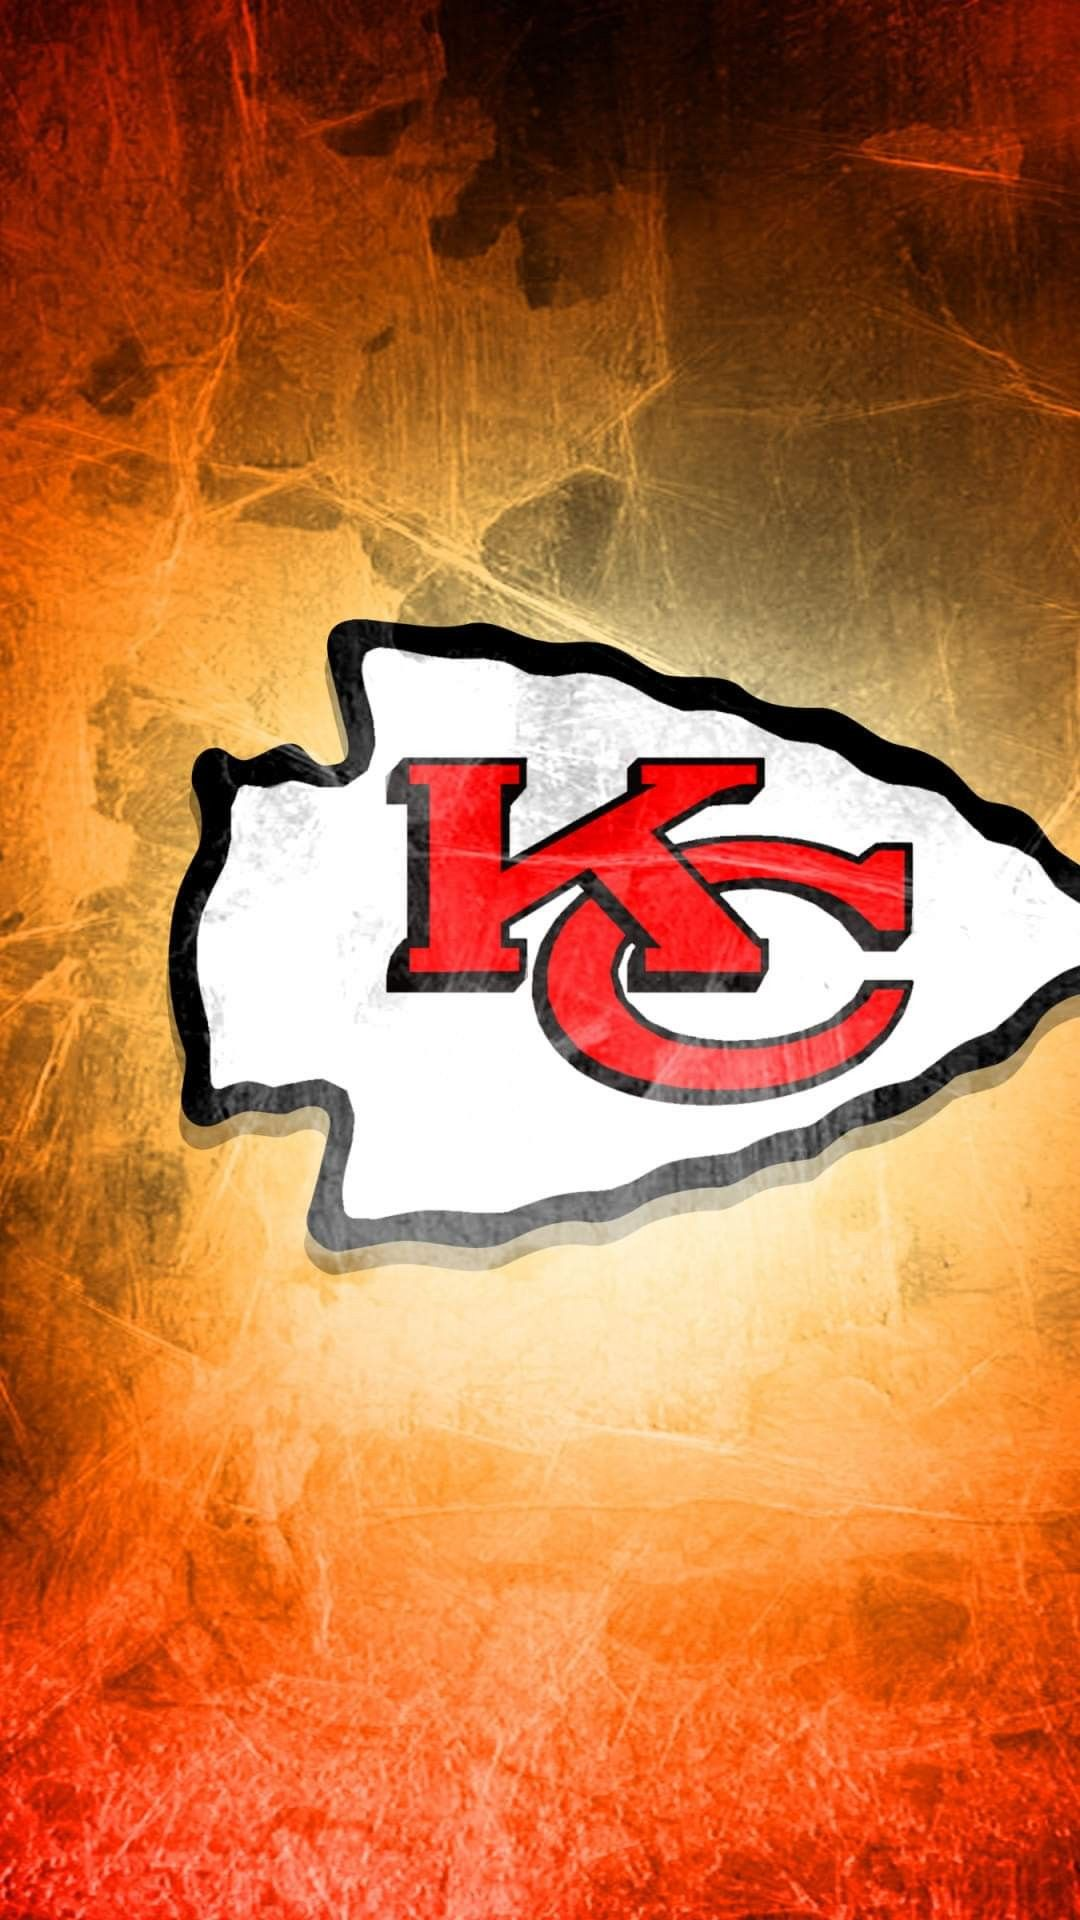 Pin By Linda Mayes On Chiefs Wallpaper In 2020 Chiefs Wallpaper Kansas City Chiefs Kansas City